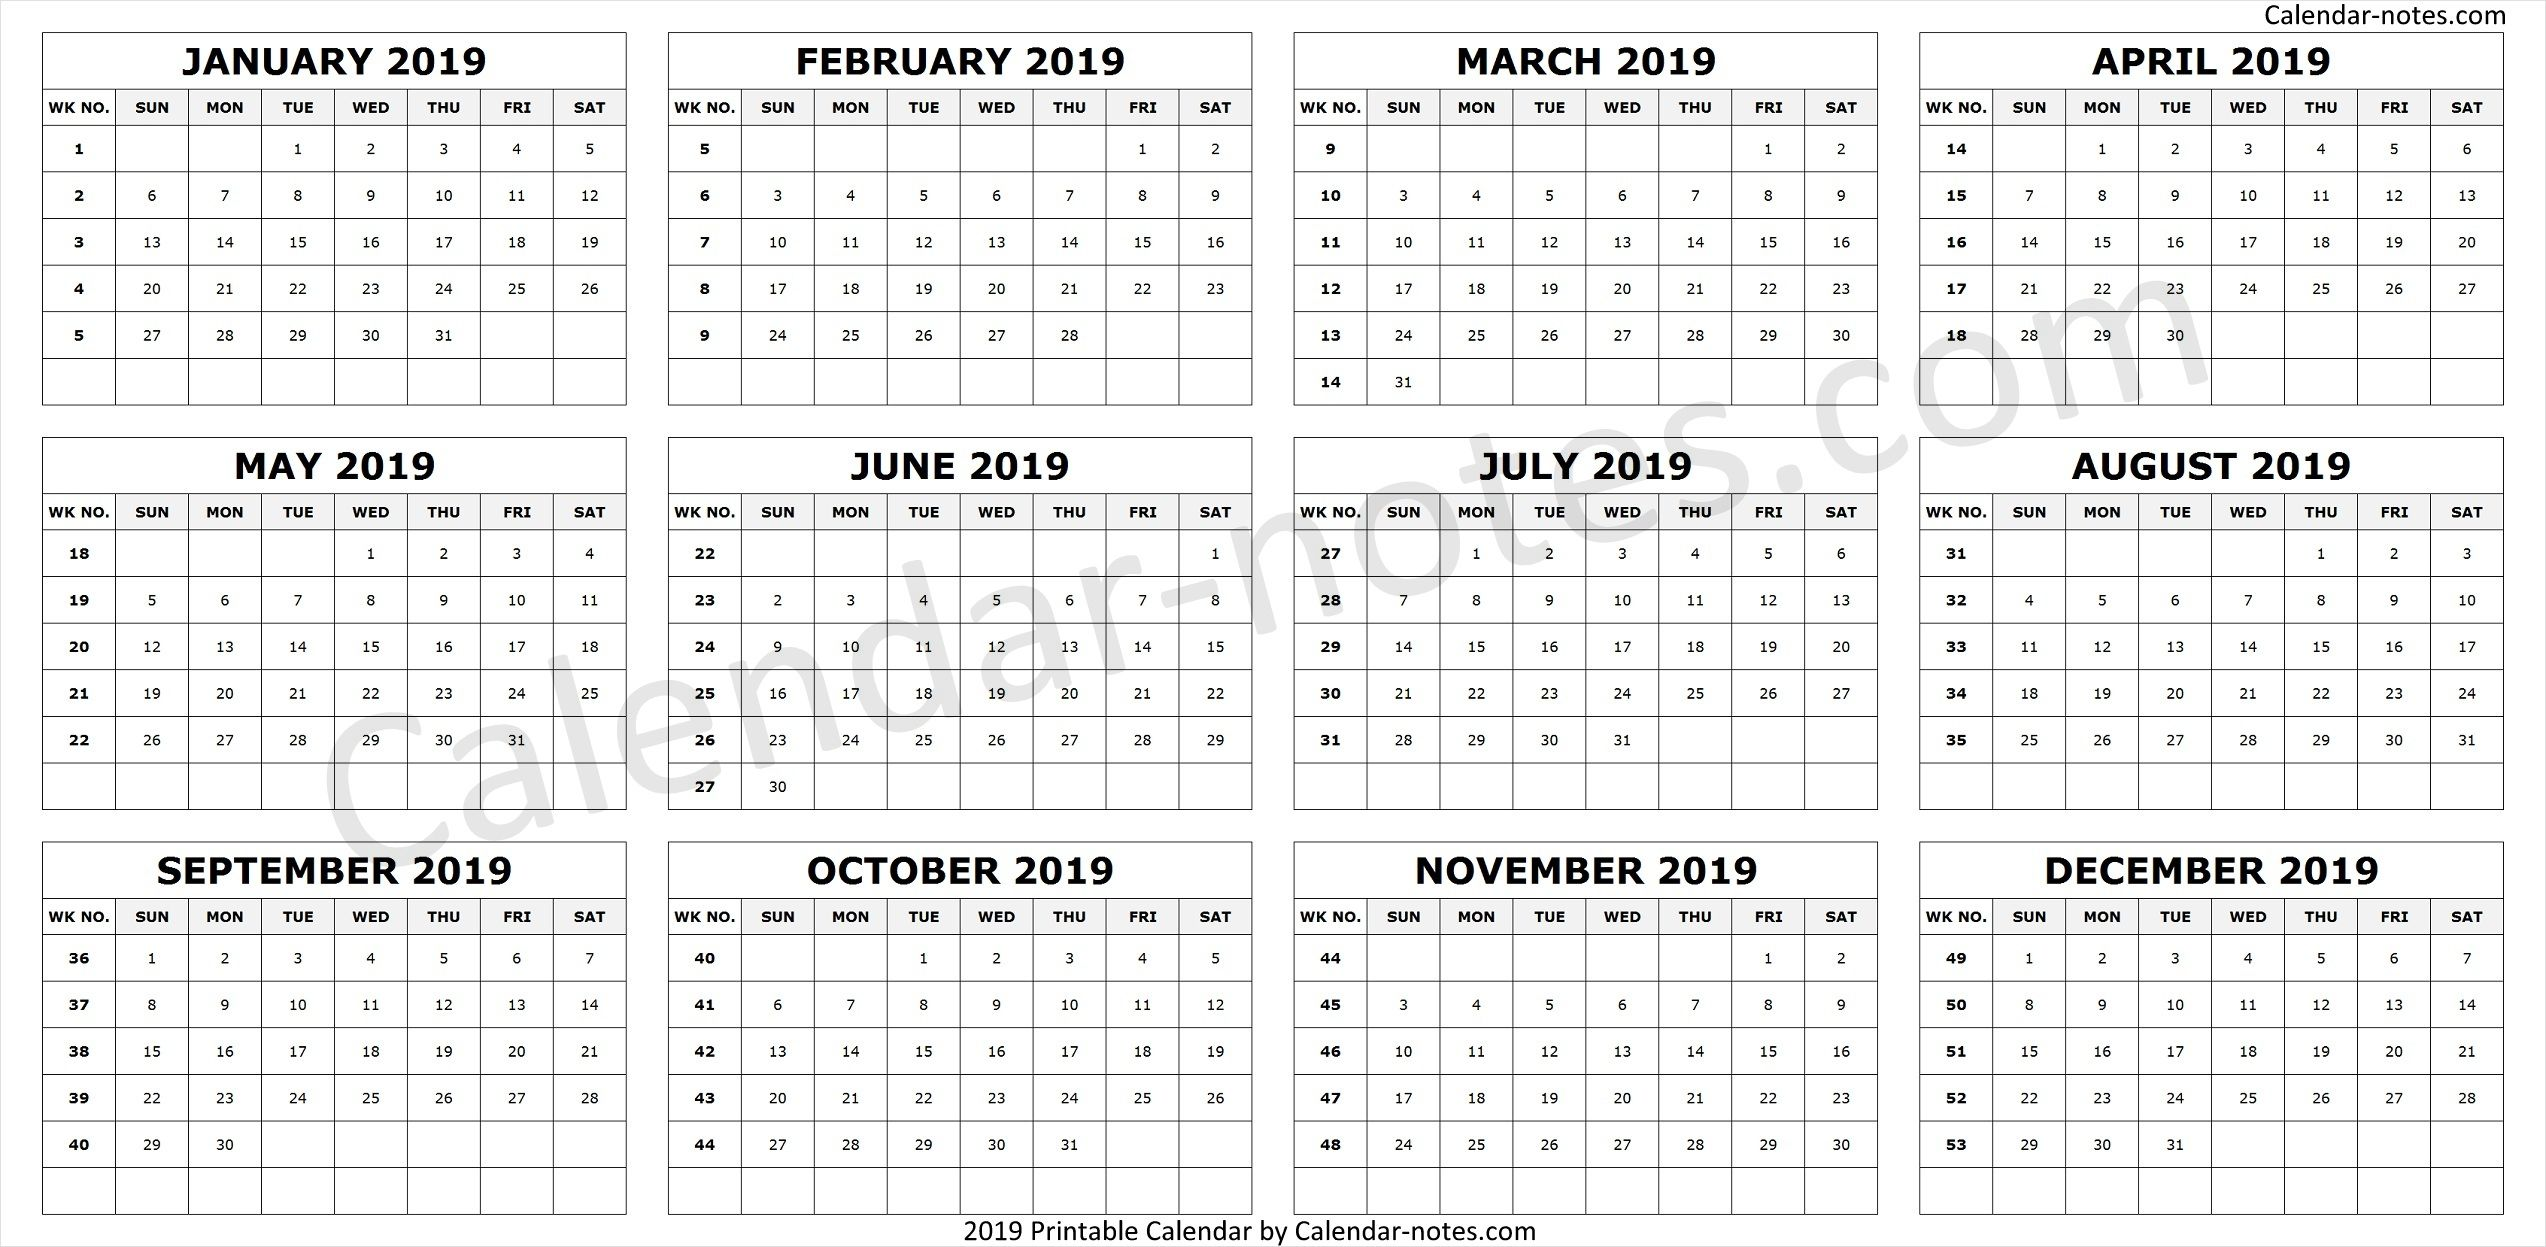 Calendar 2019 By Week Numbers Week Number Calendar 2019 To Print